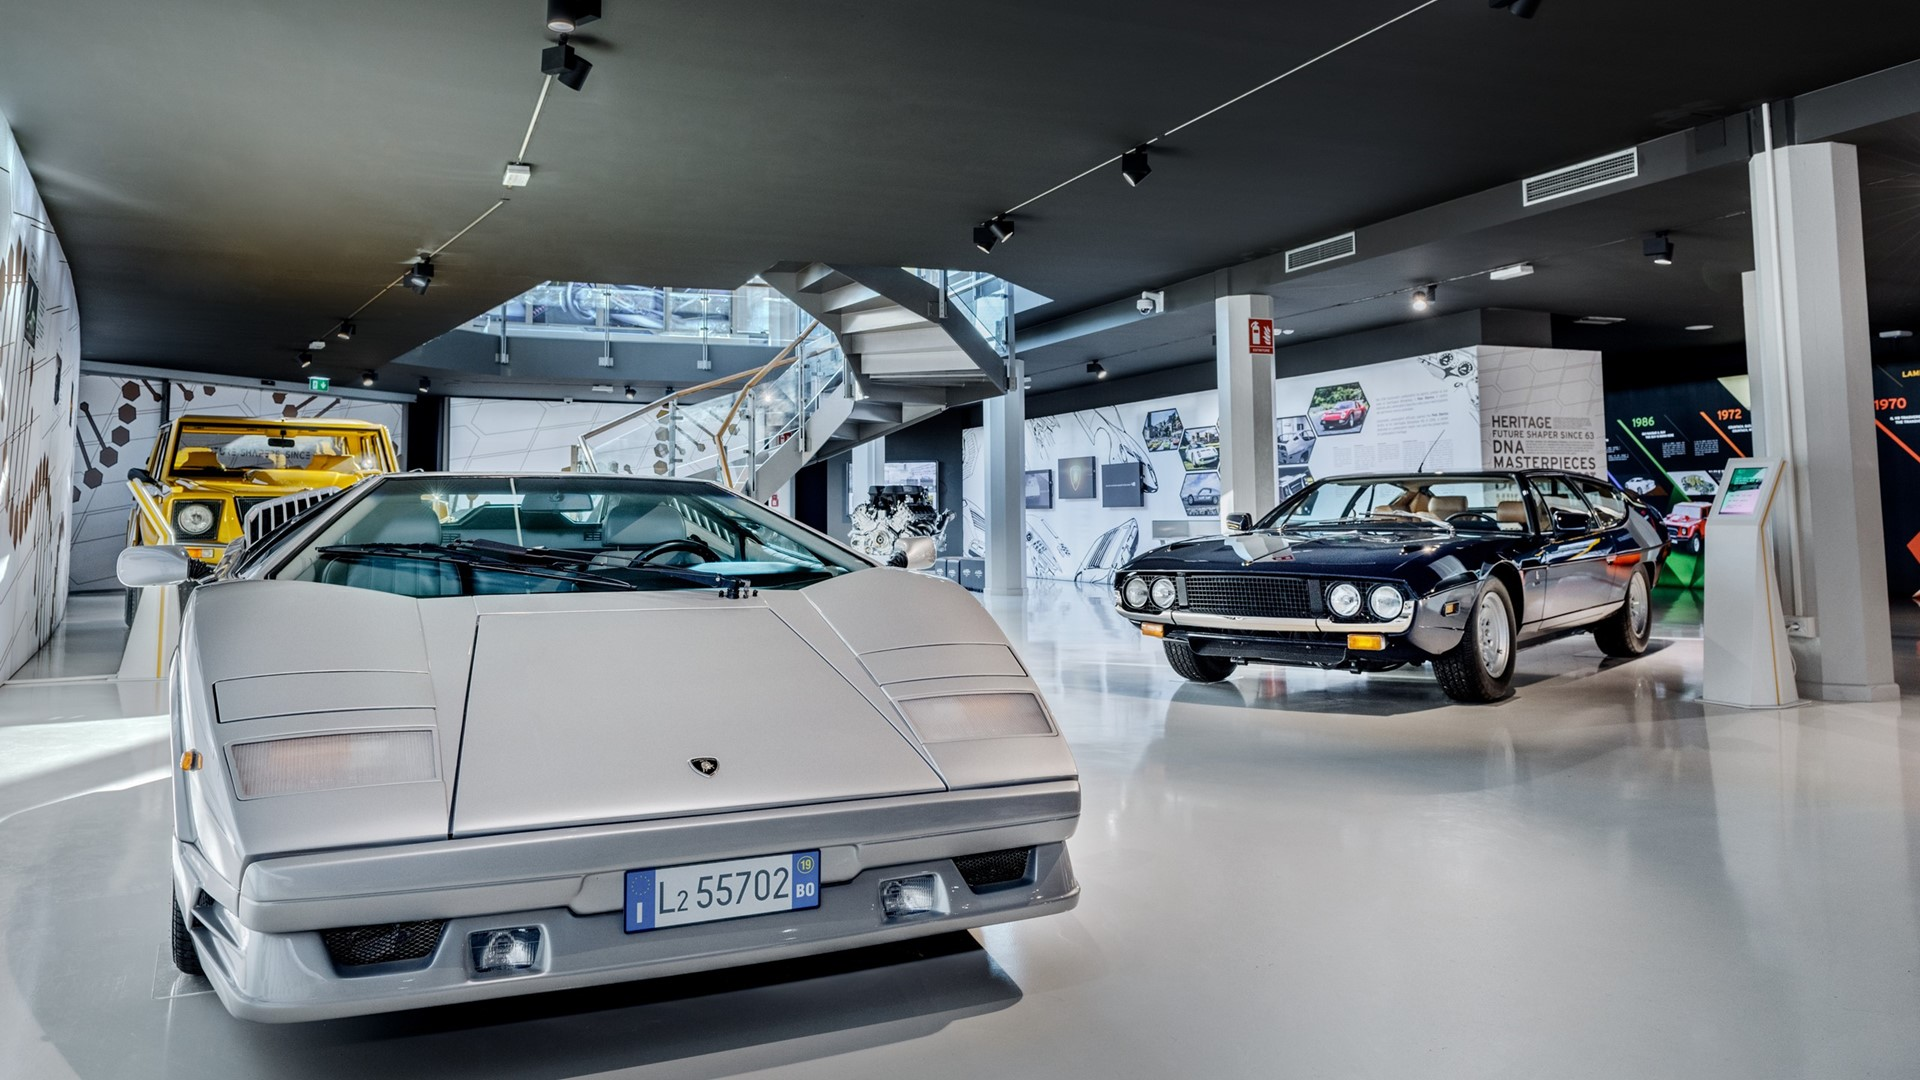 The Lamborghini Museum reopens its doors to the public The new Sián Roadster on display until 12 July - Image 4